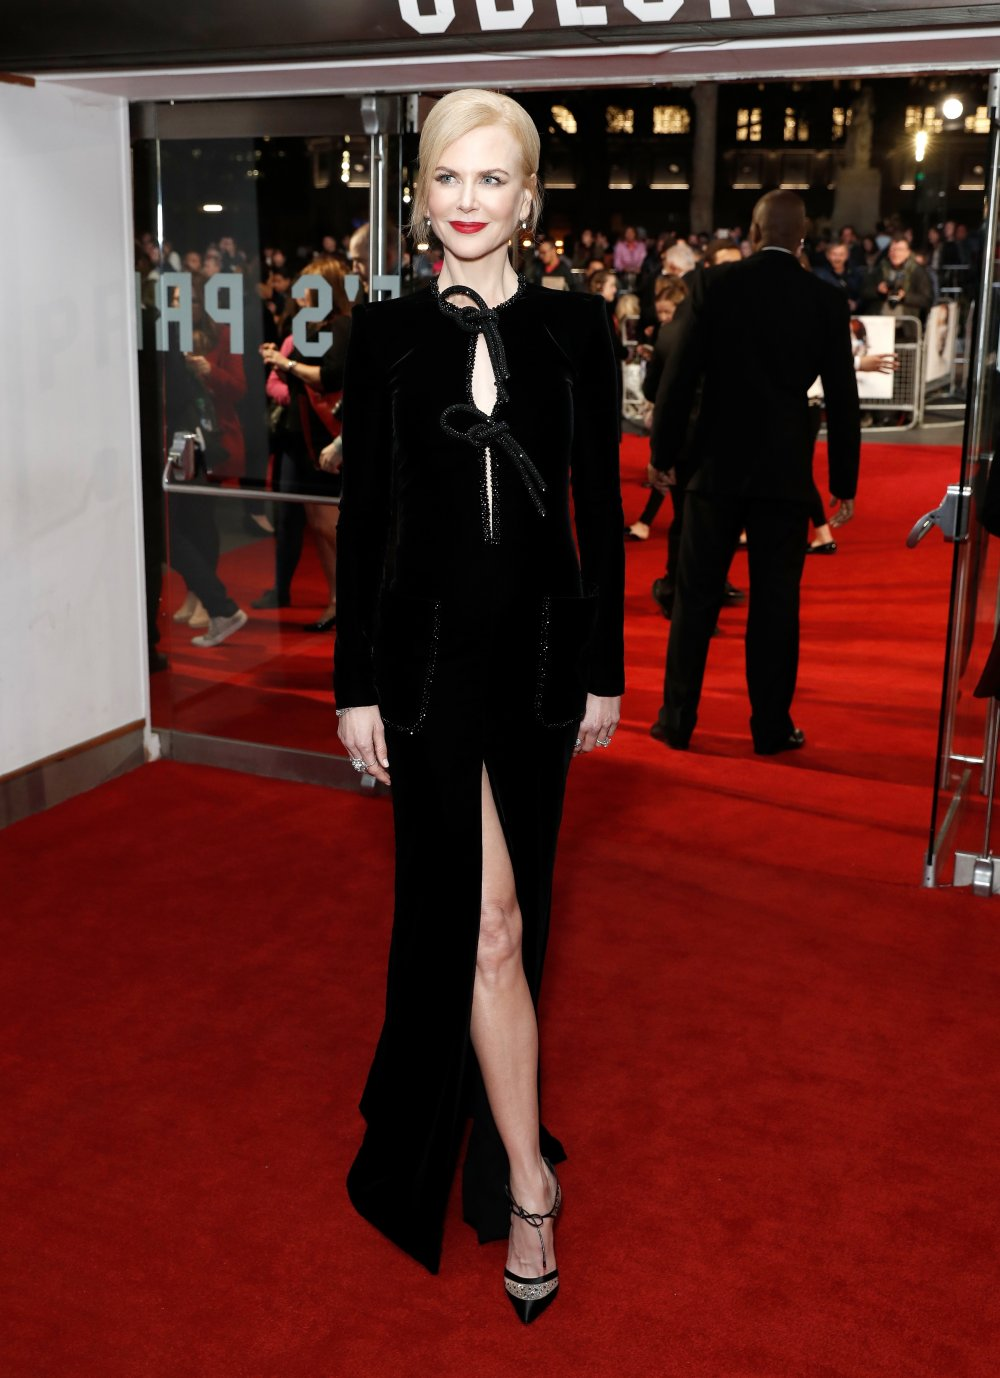 Nicole Kidman attends the American Express Gala screening of Lion at Odeon Leicester Square